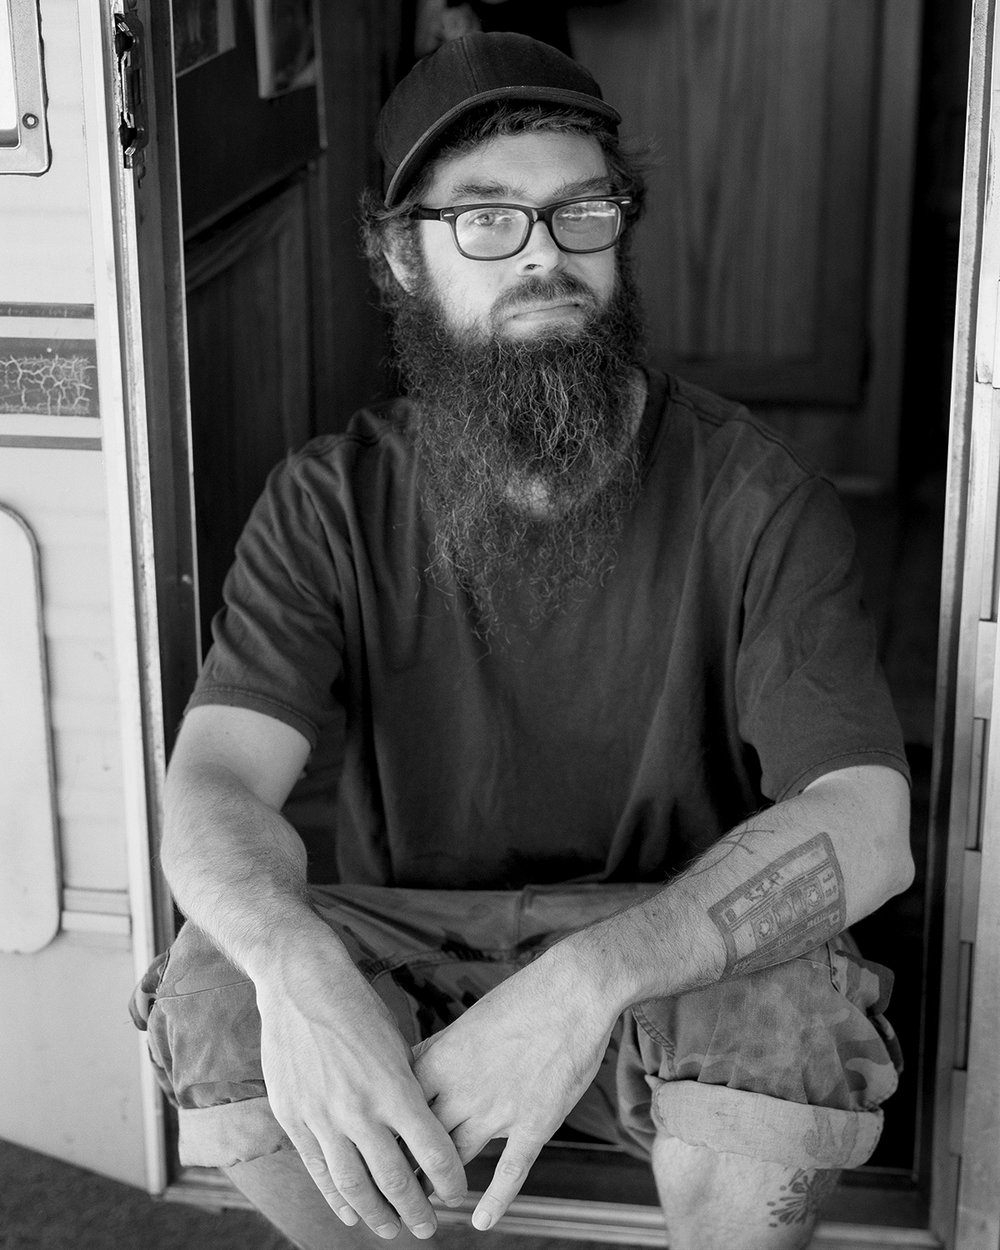 Graham in the doorway of his RV, in Portland, OR.